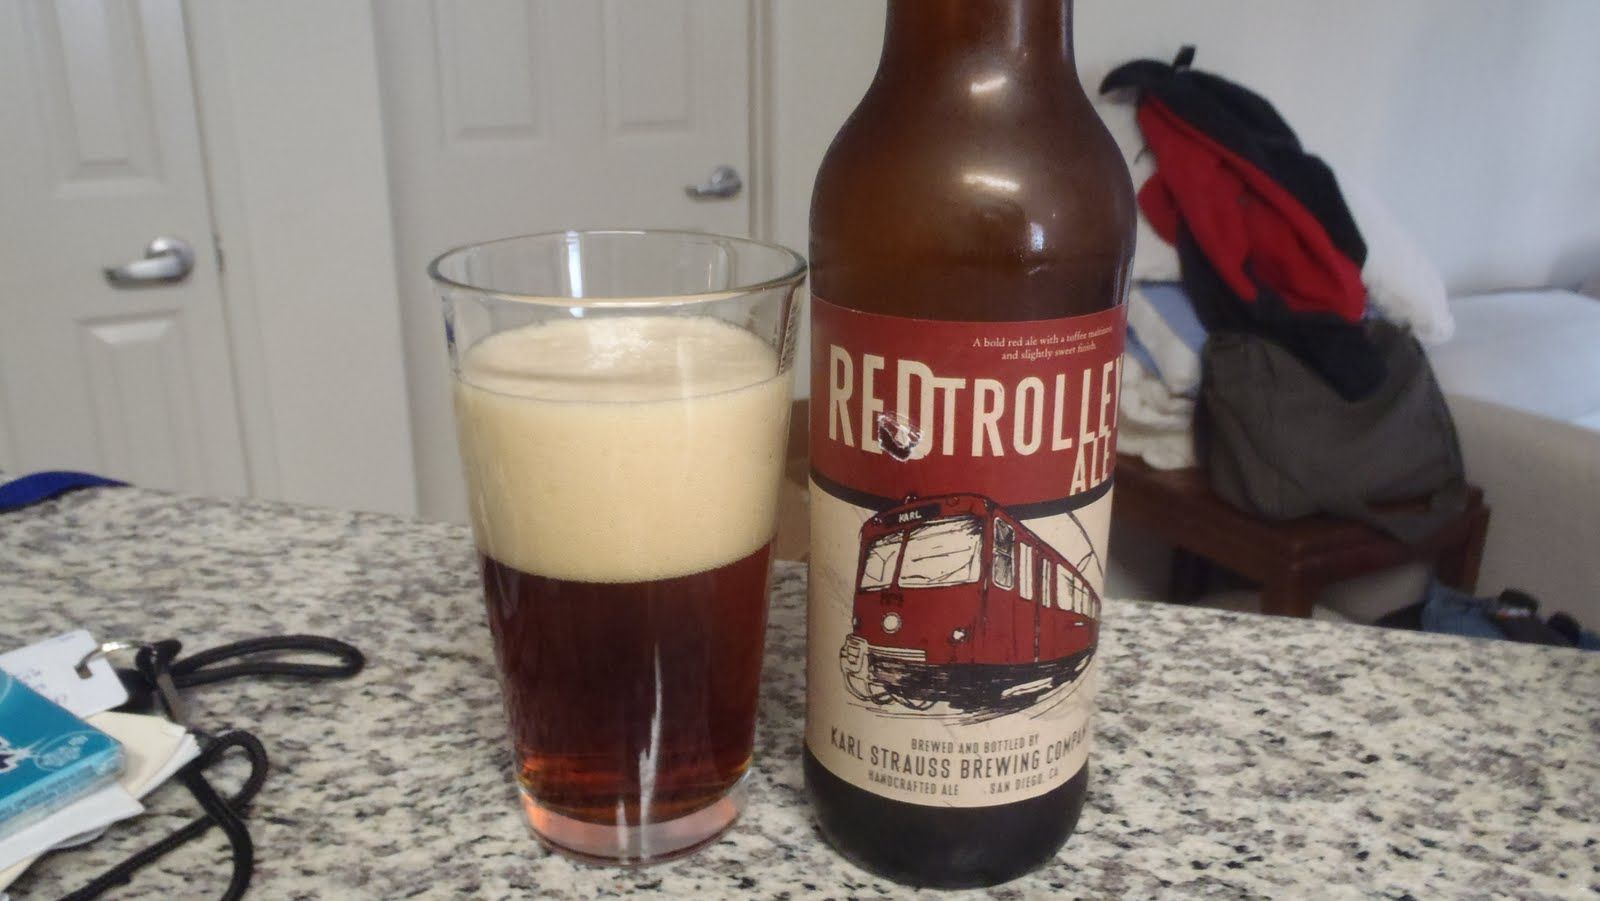 Red Trolley Ale - The best Irish red beer I've had since my last trip to Europe was at my local supermarket!